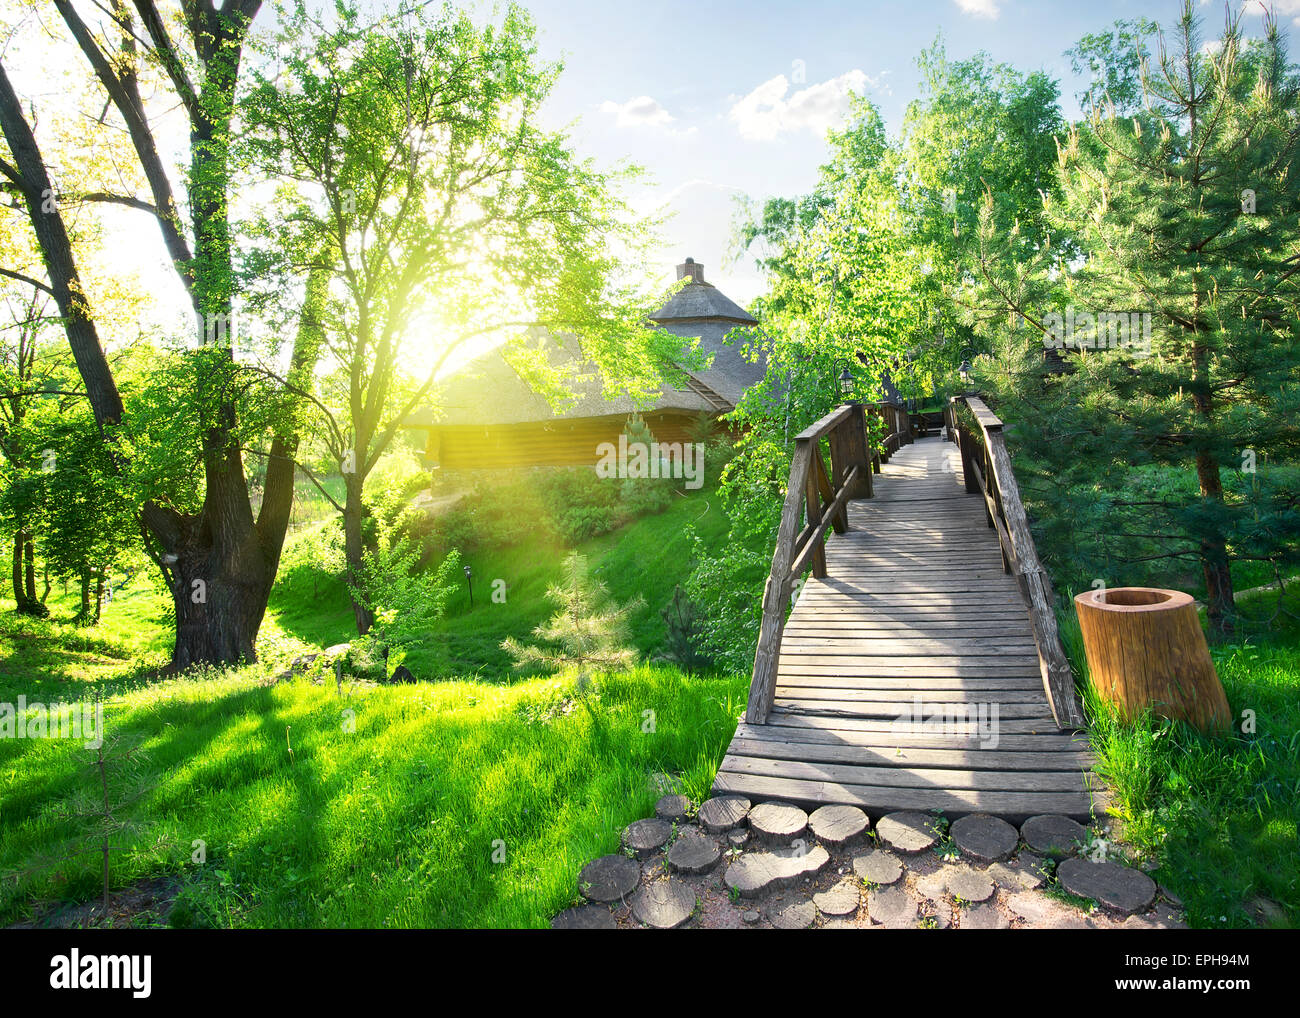 House of log and bridge in green park - Stock Image